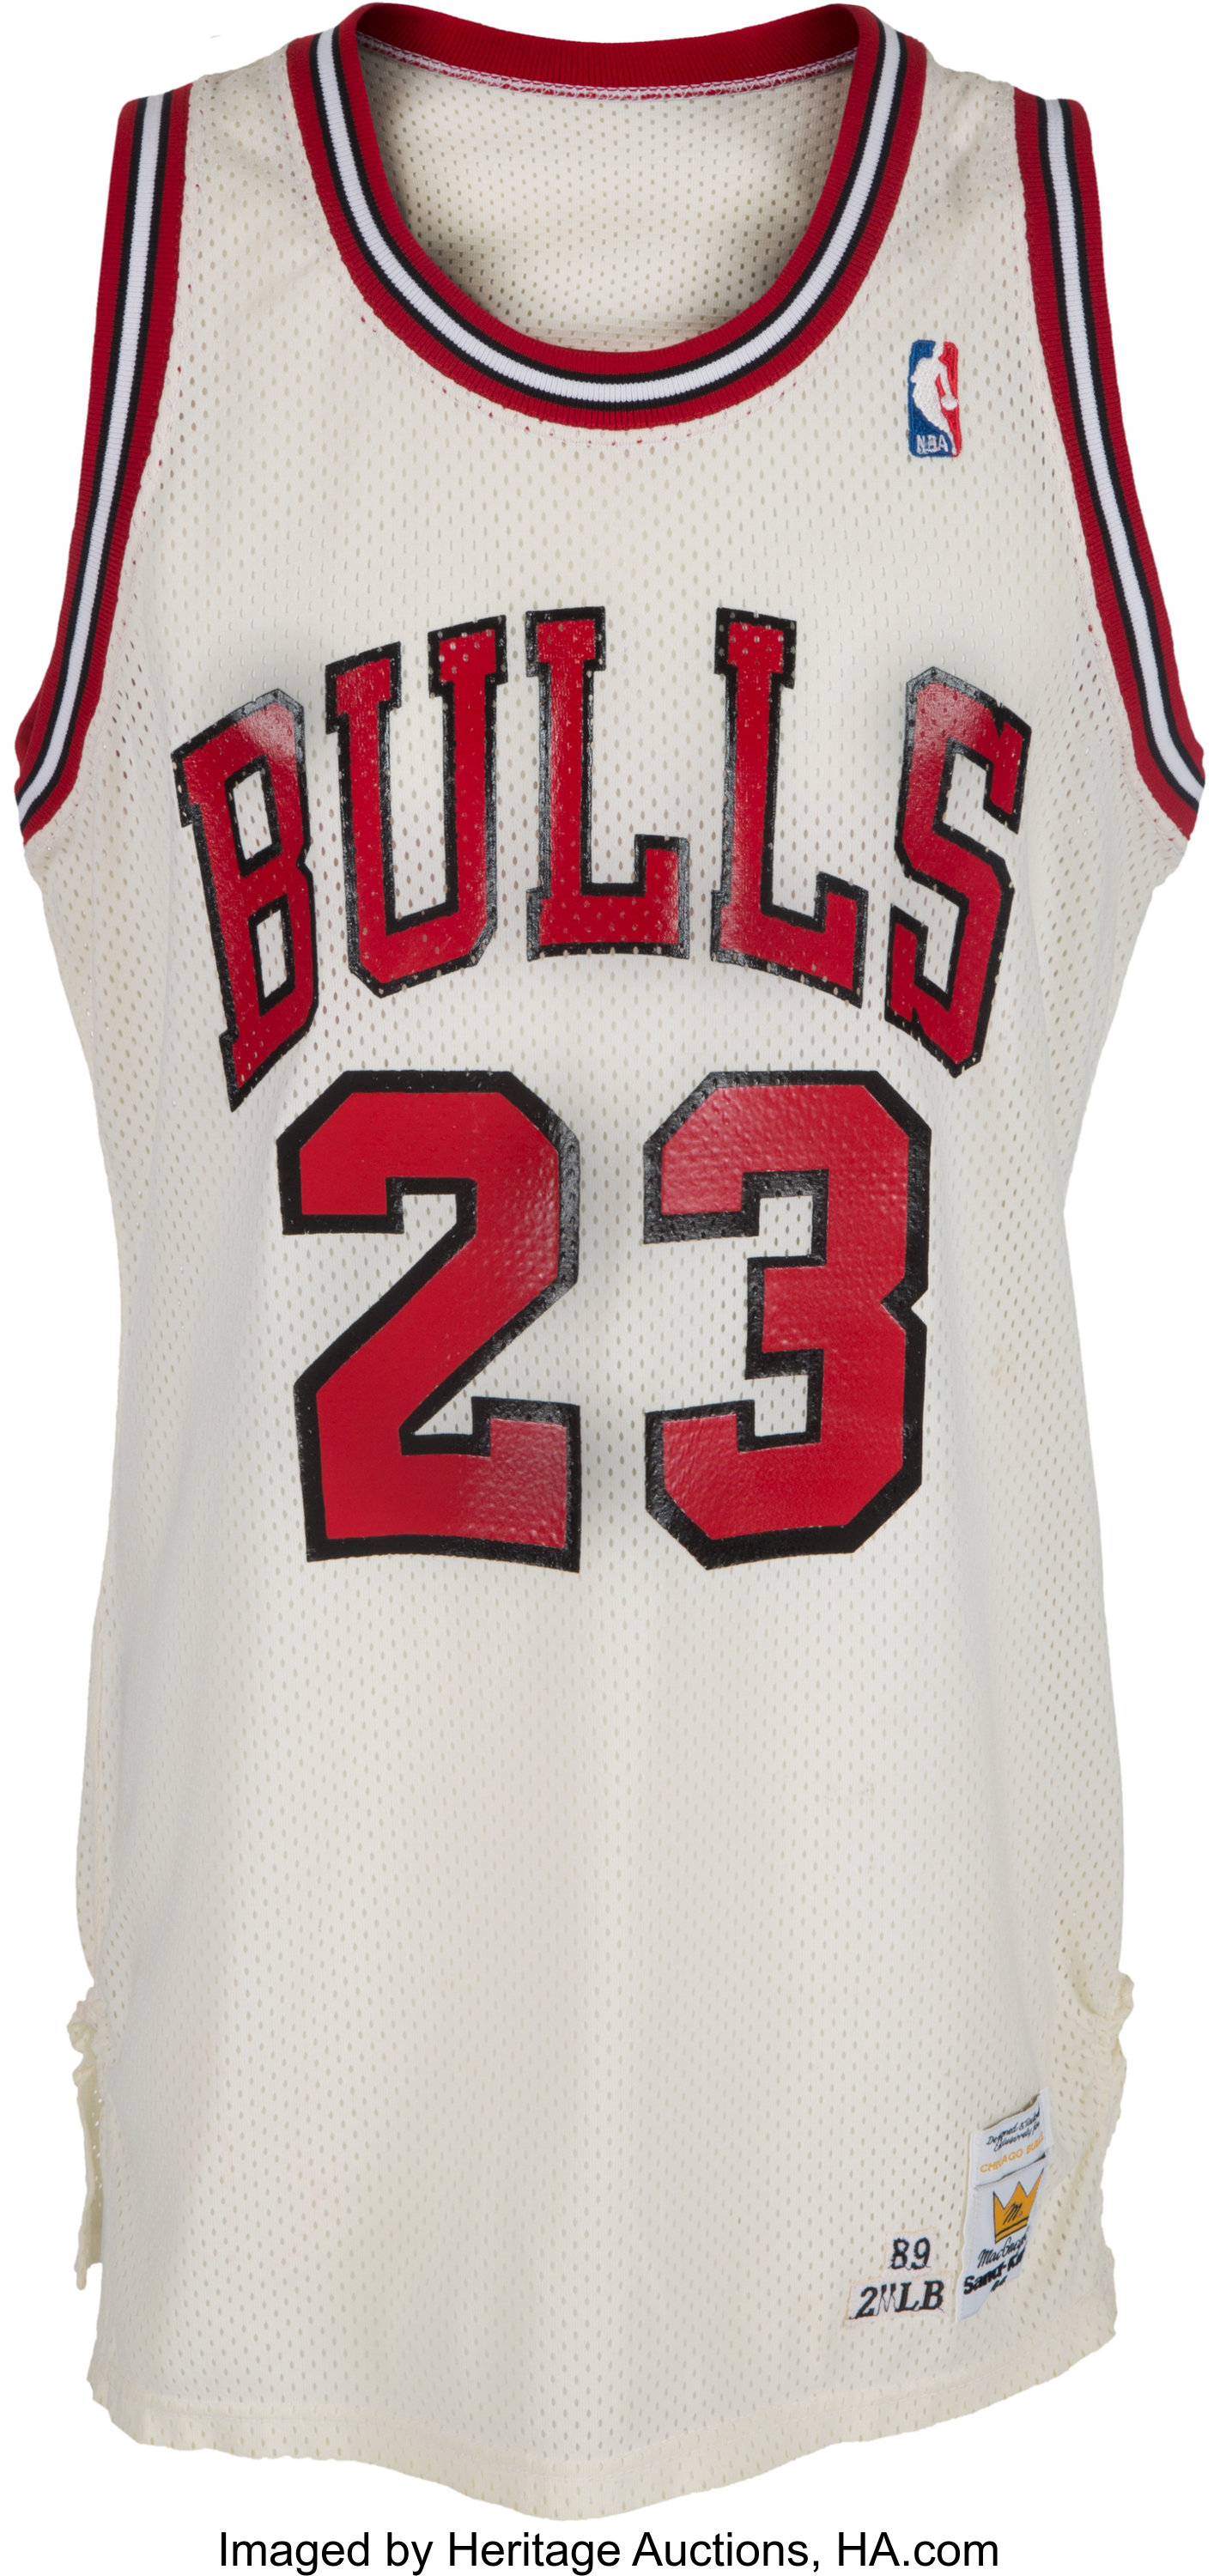 official photos 2371b c4cb0 1989-90 Michael Jordan Game Worn Chicago Bulls Jersey ...